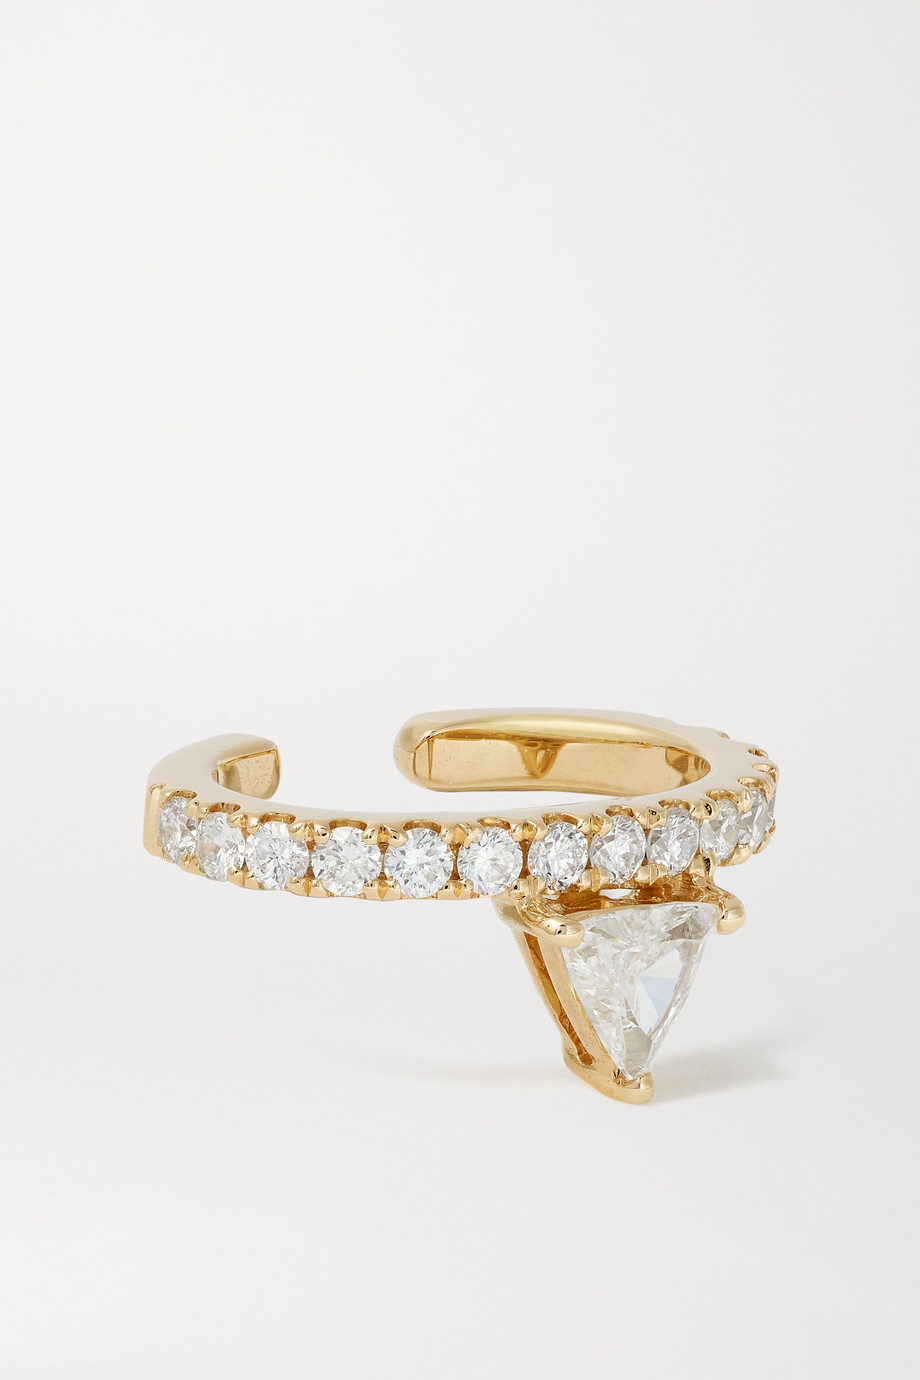 Anita Ko 18-karat gold diamond ear cuff